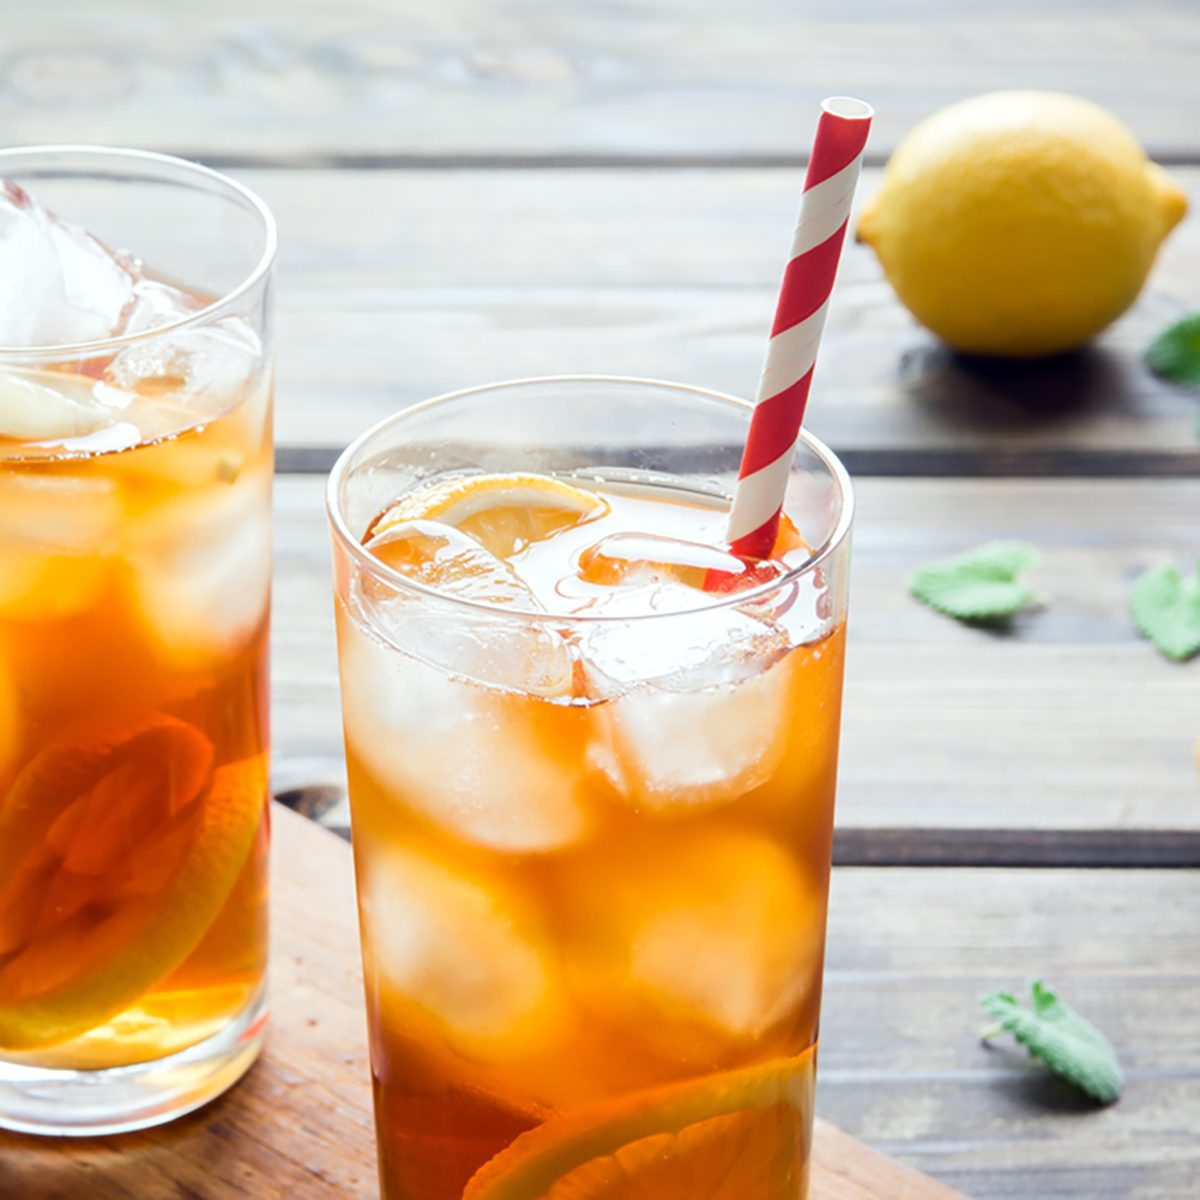 Iced tea with lemon slices, mint and ice cubes on wooden rustic background close up.